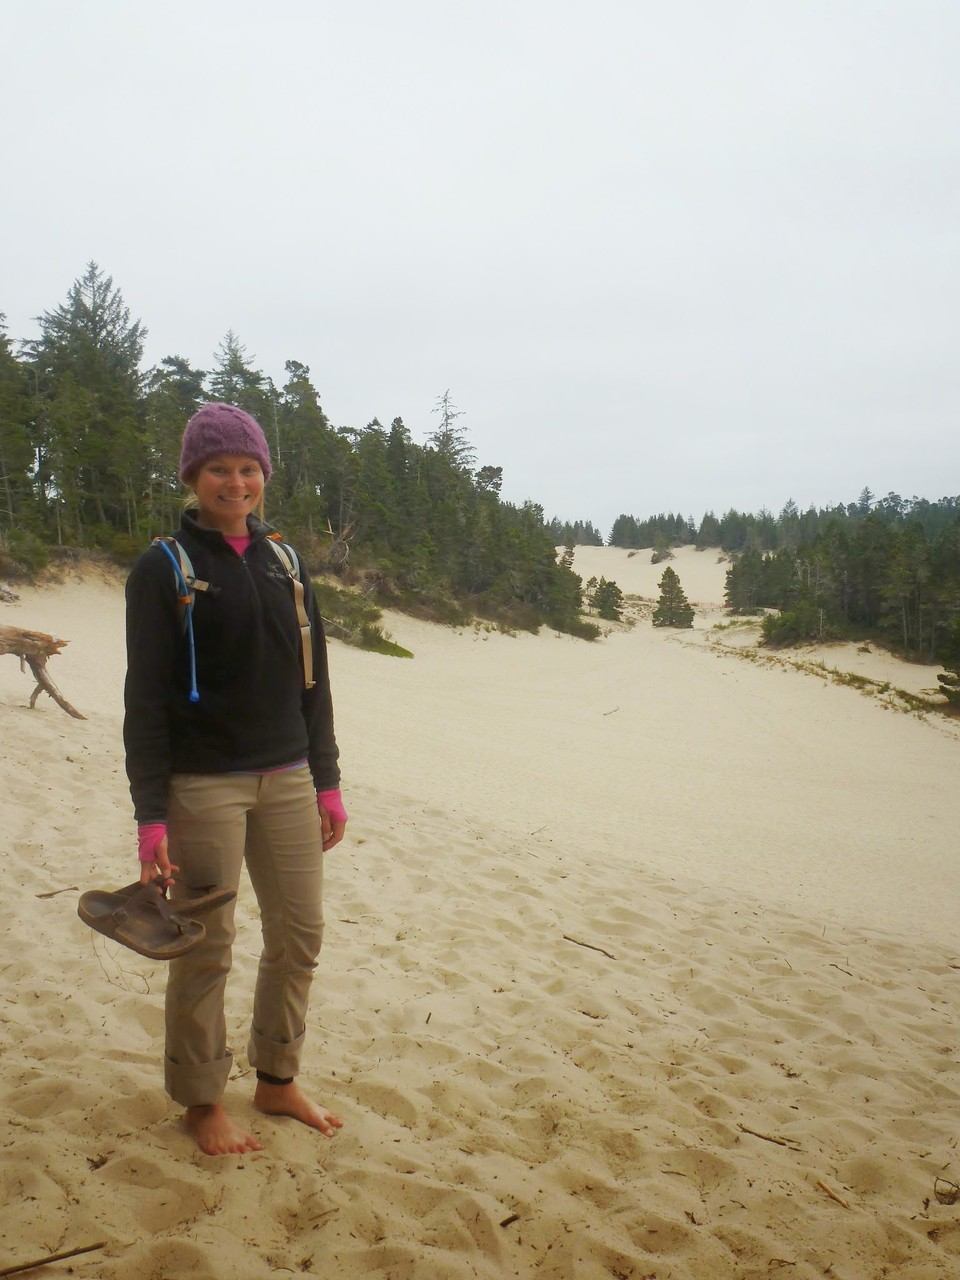 Quick stop to play around on the Oregon sand dunes